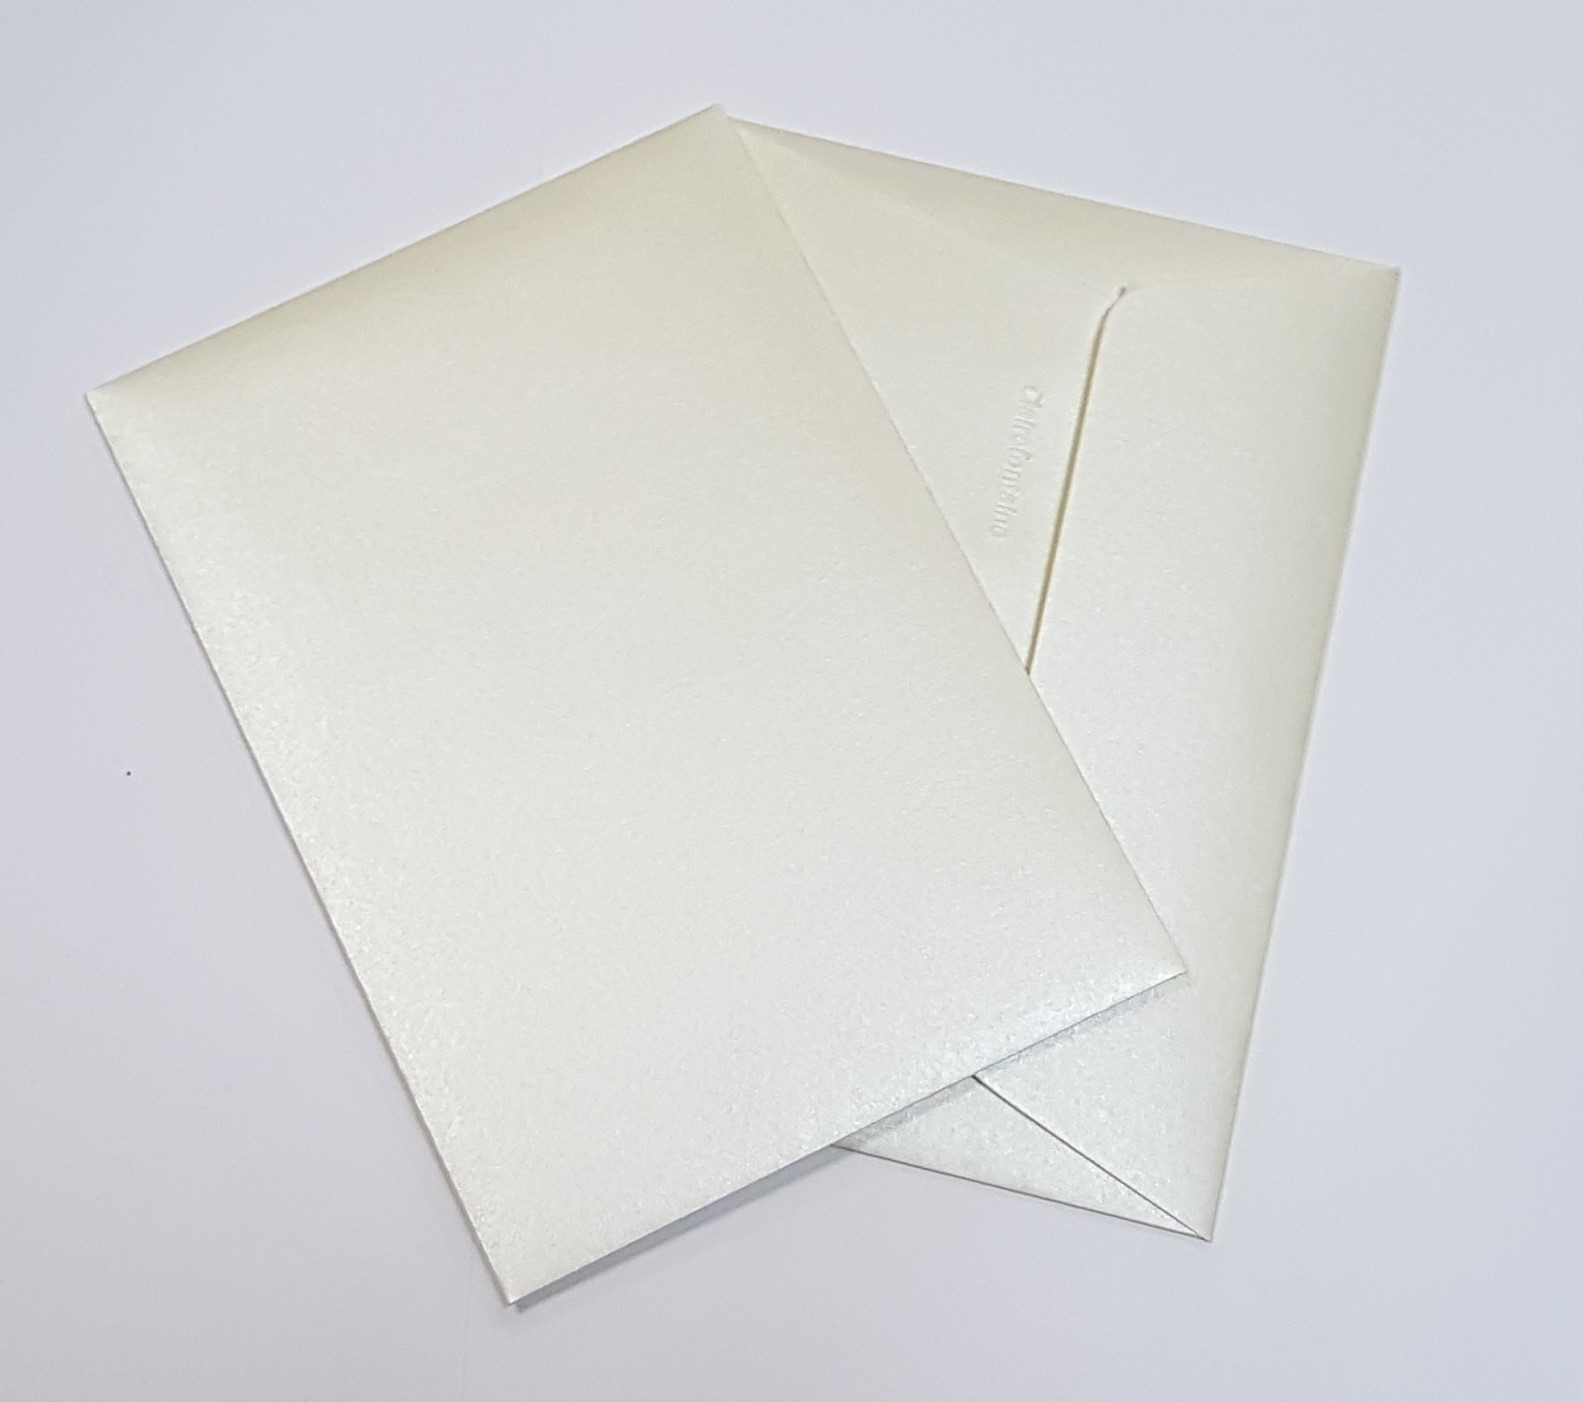 Envelopes C6 metalizados cor champanhe